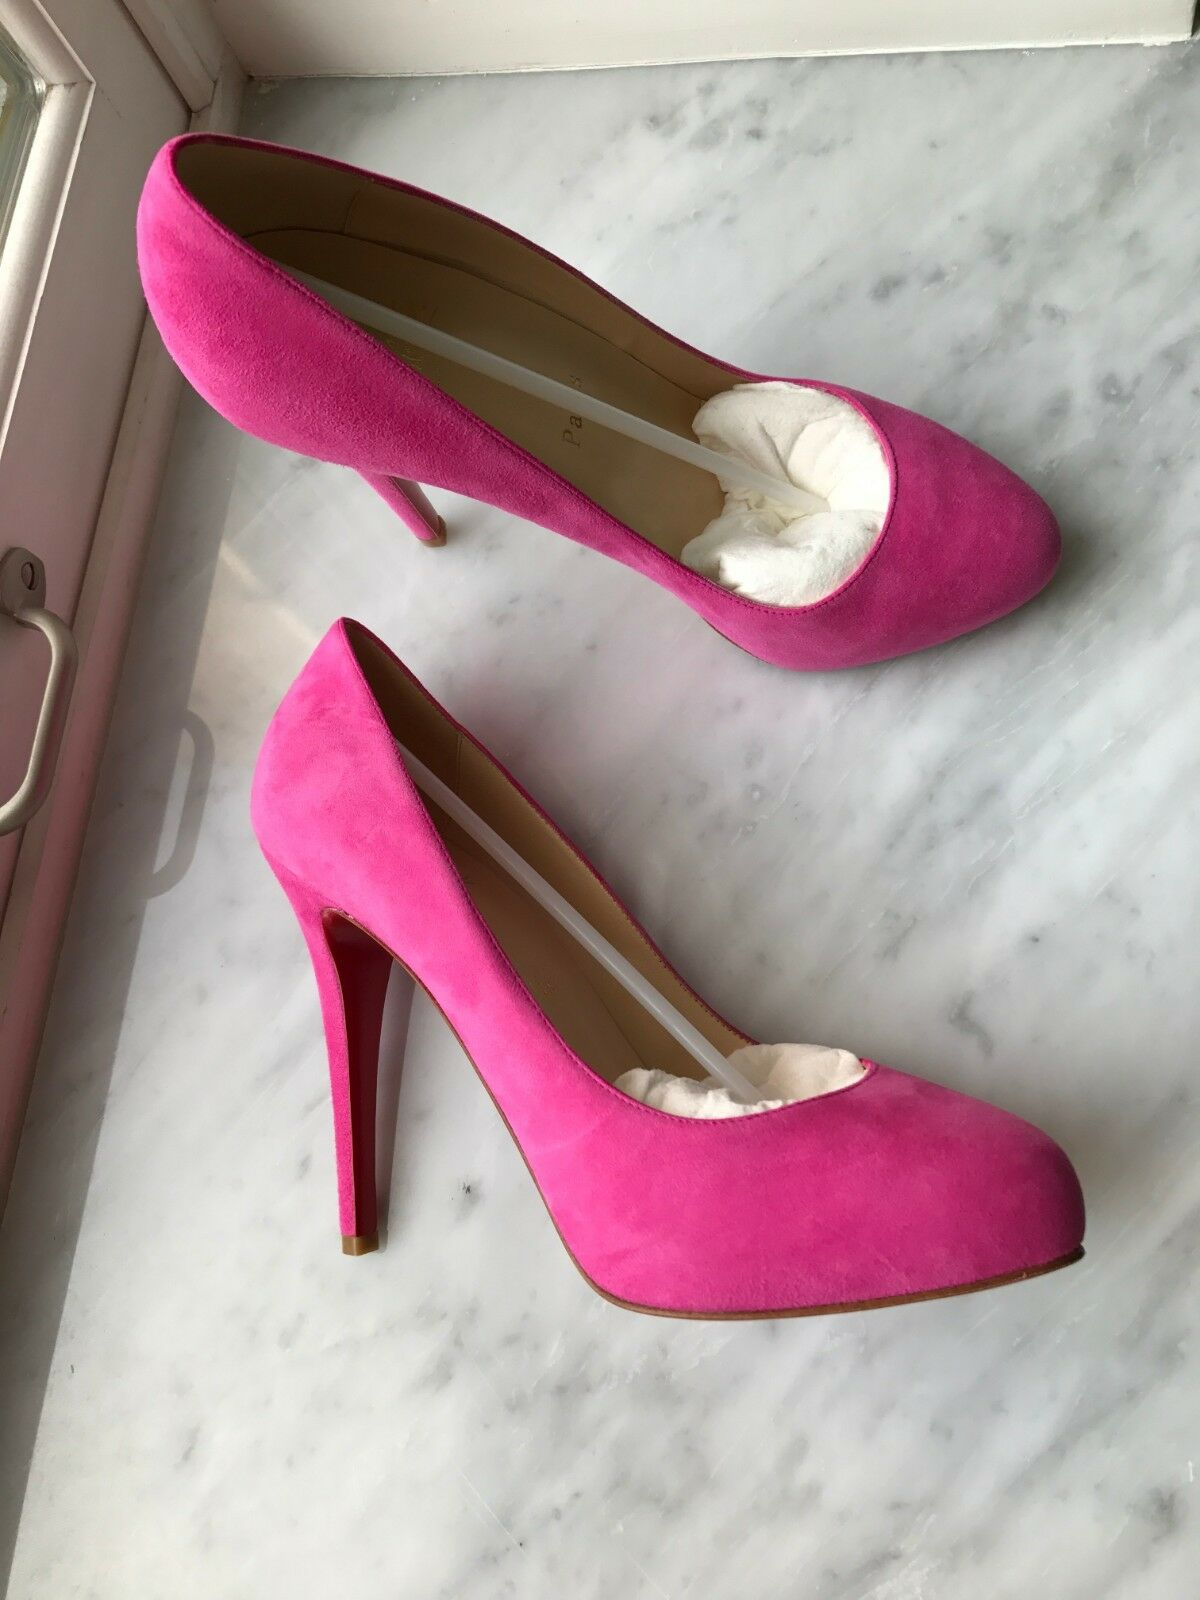 Christian Christian Christian Louboutin BRAND NEW hot pink suede shoes 38 0e8d9f